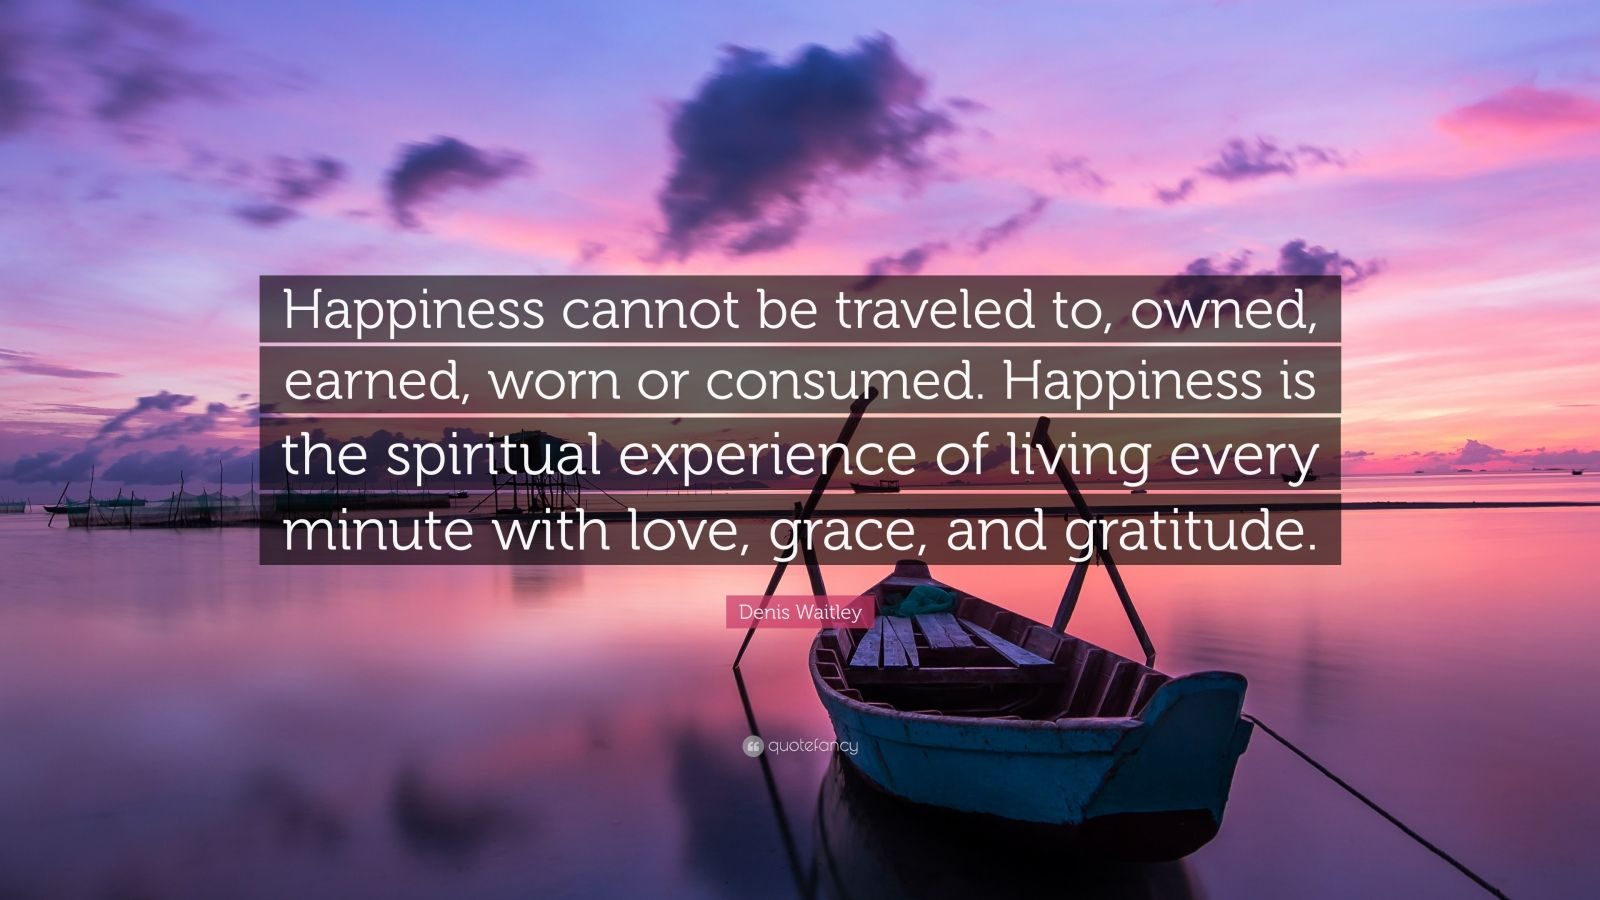 """Denis Waitley Quote: """"Happiness cannot be traveled to, owned, earned, worn or consumed. Happiness is the spiritual experience of living every minute with love, grace, and gratitude."""""""